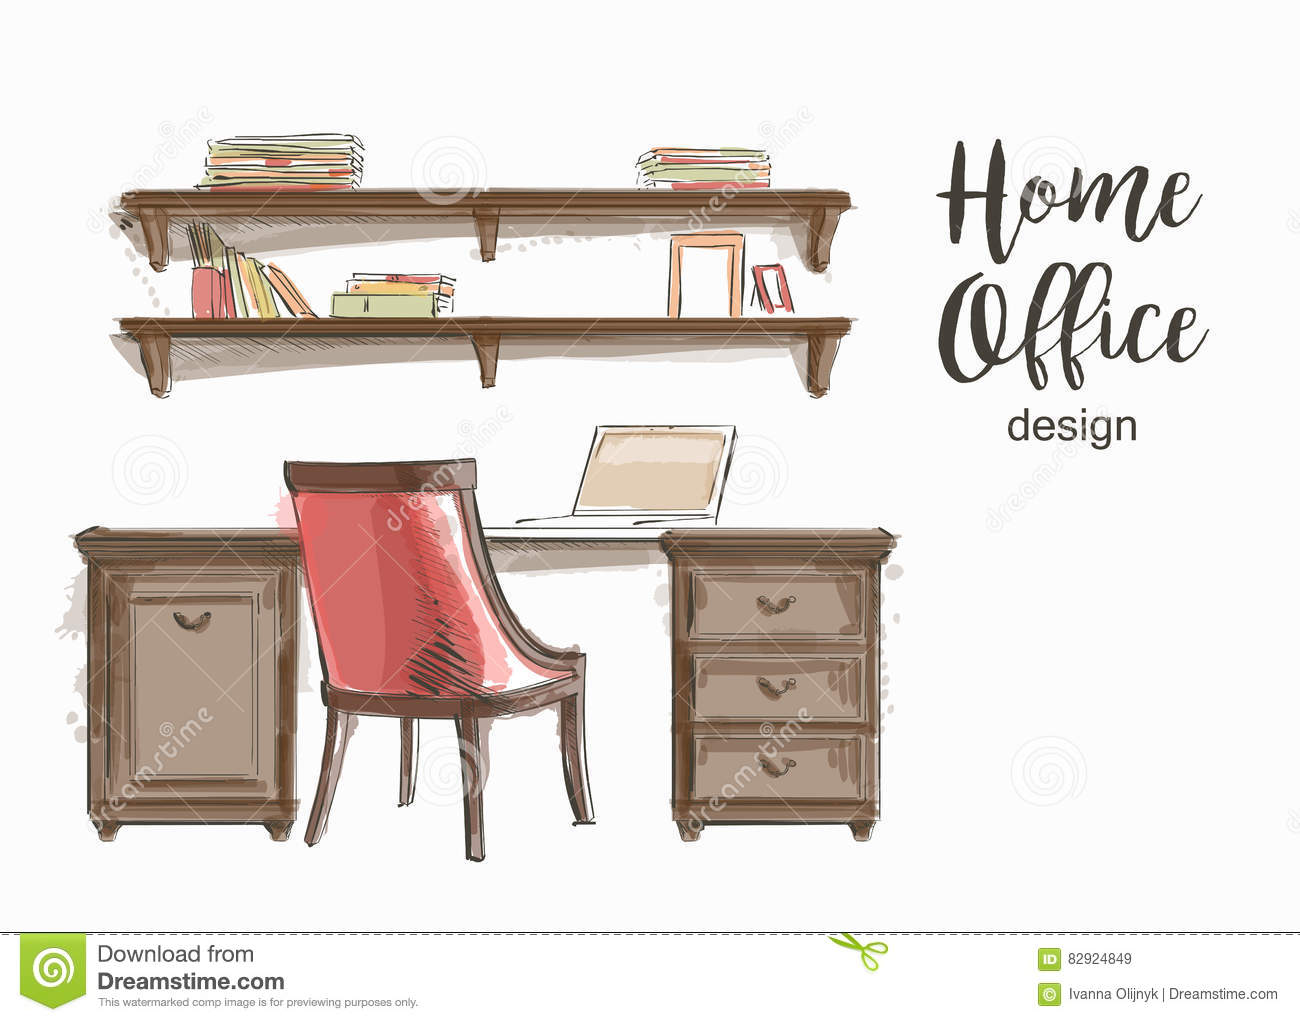 Interior wooden shelves free vector - Vector Classic Home Office Stock Vector Chair Hand Home Interior Office Shelf Sketch Table Vector Wooden